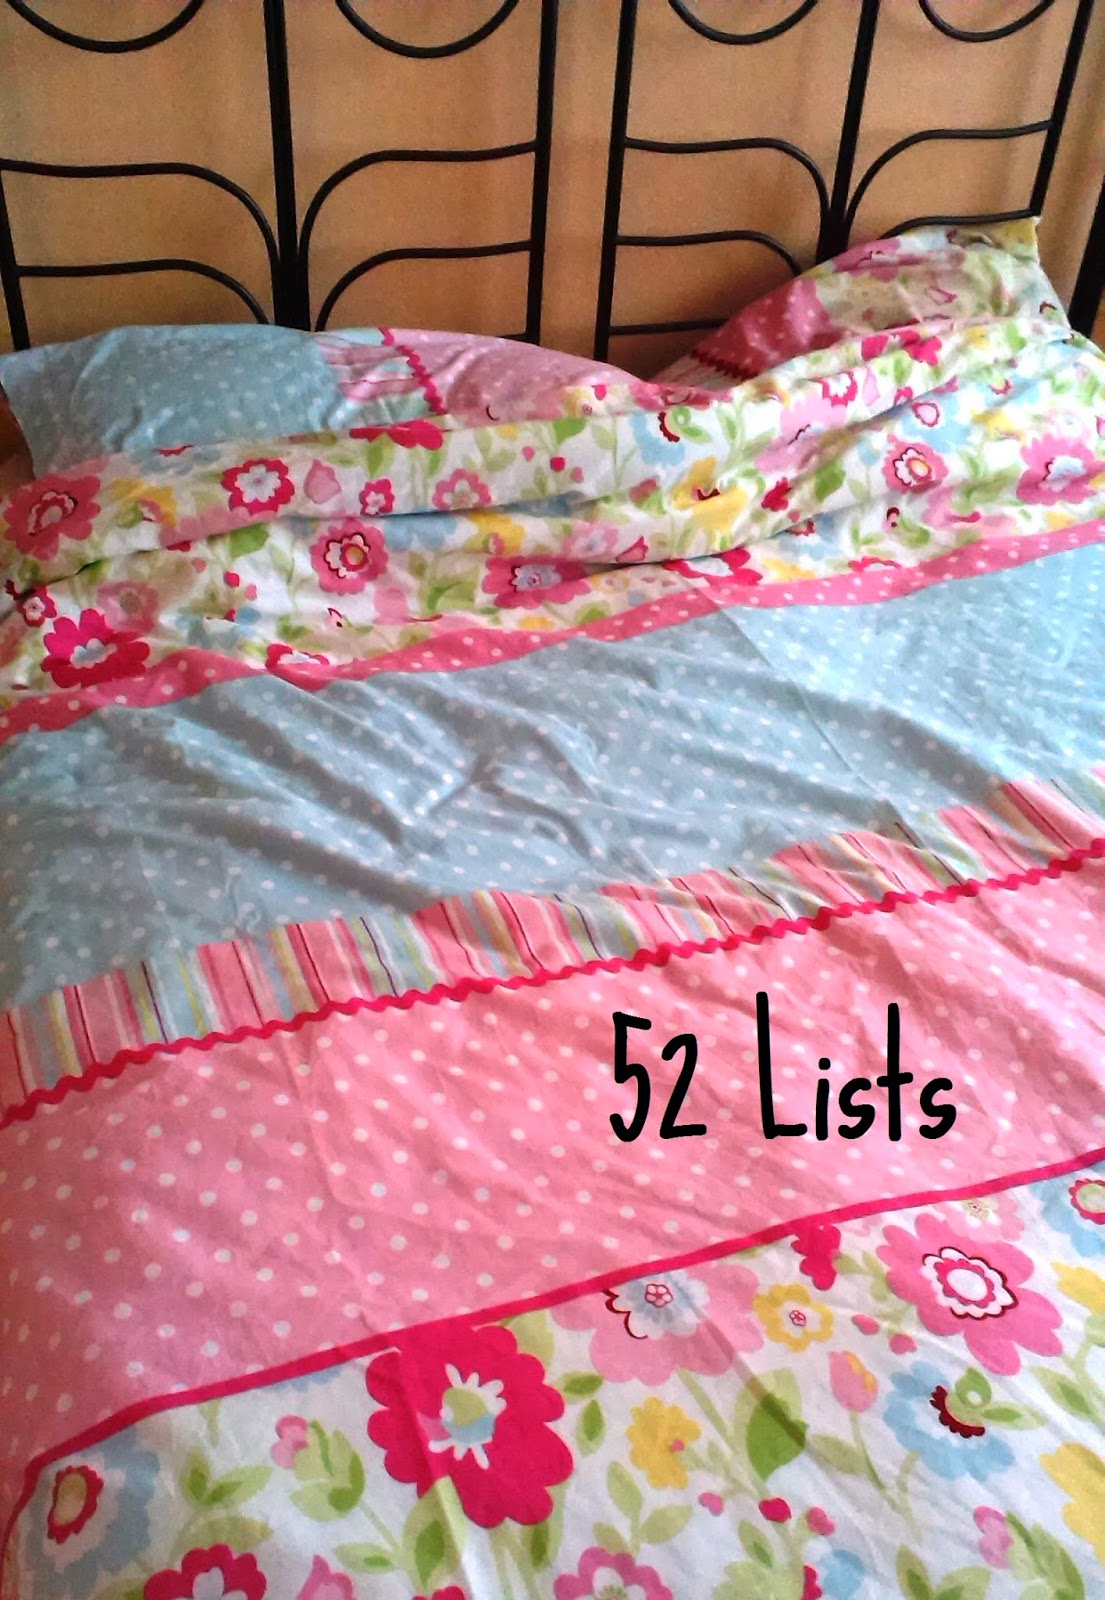 52 Lists - Your Dreams Right Now